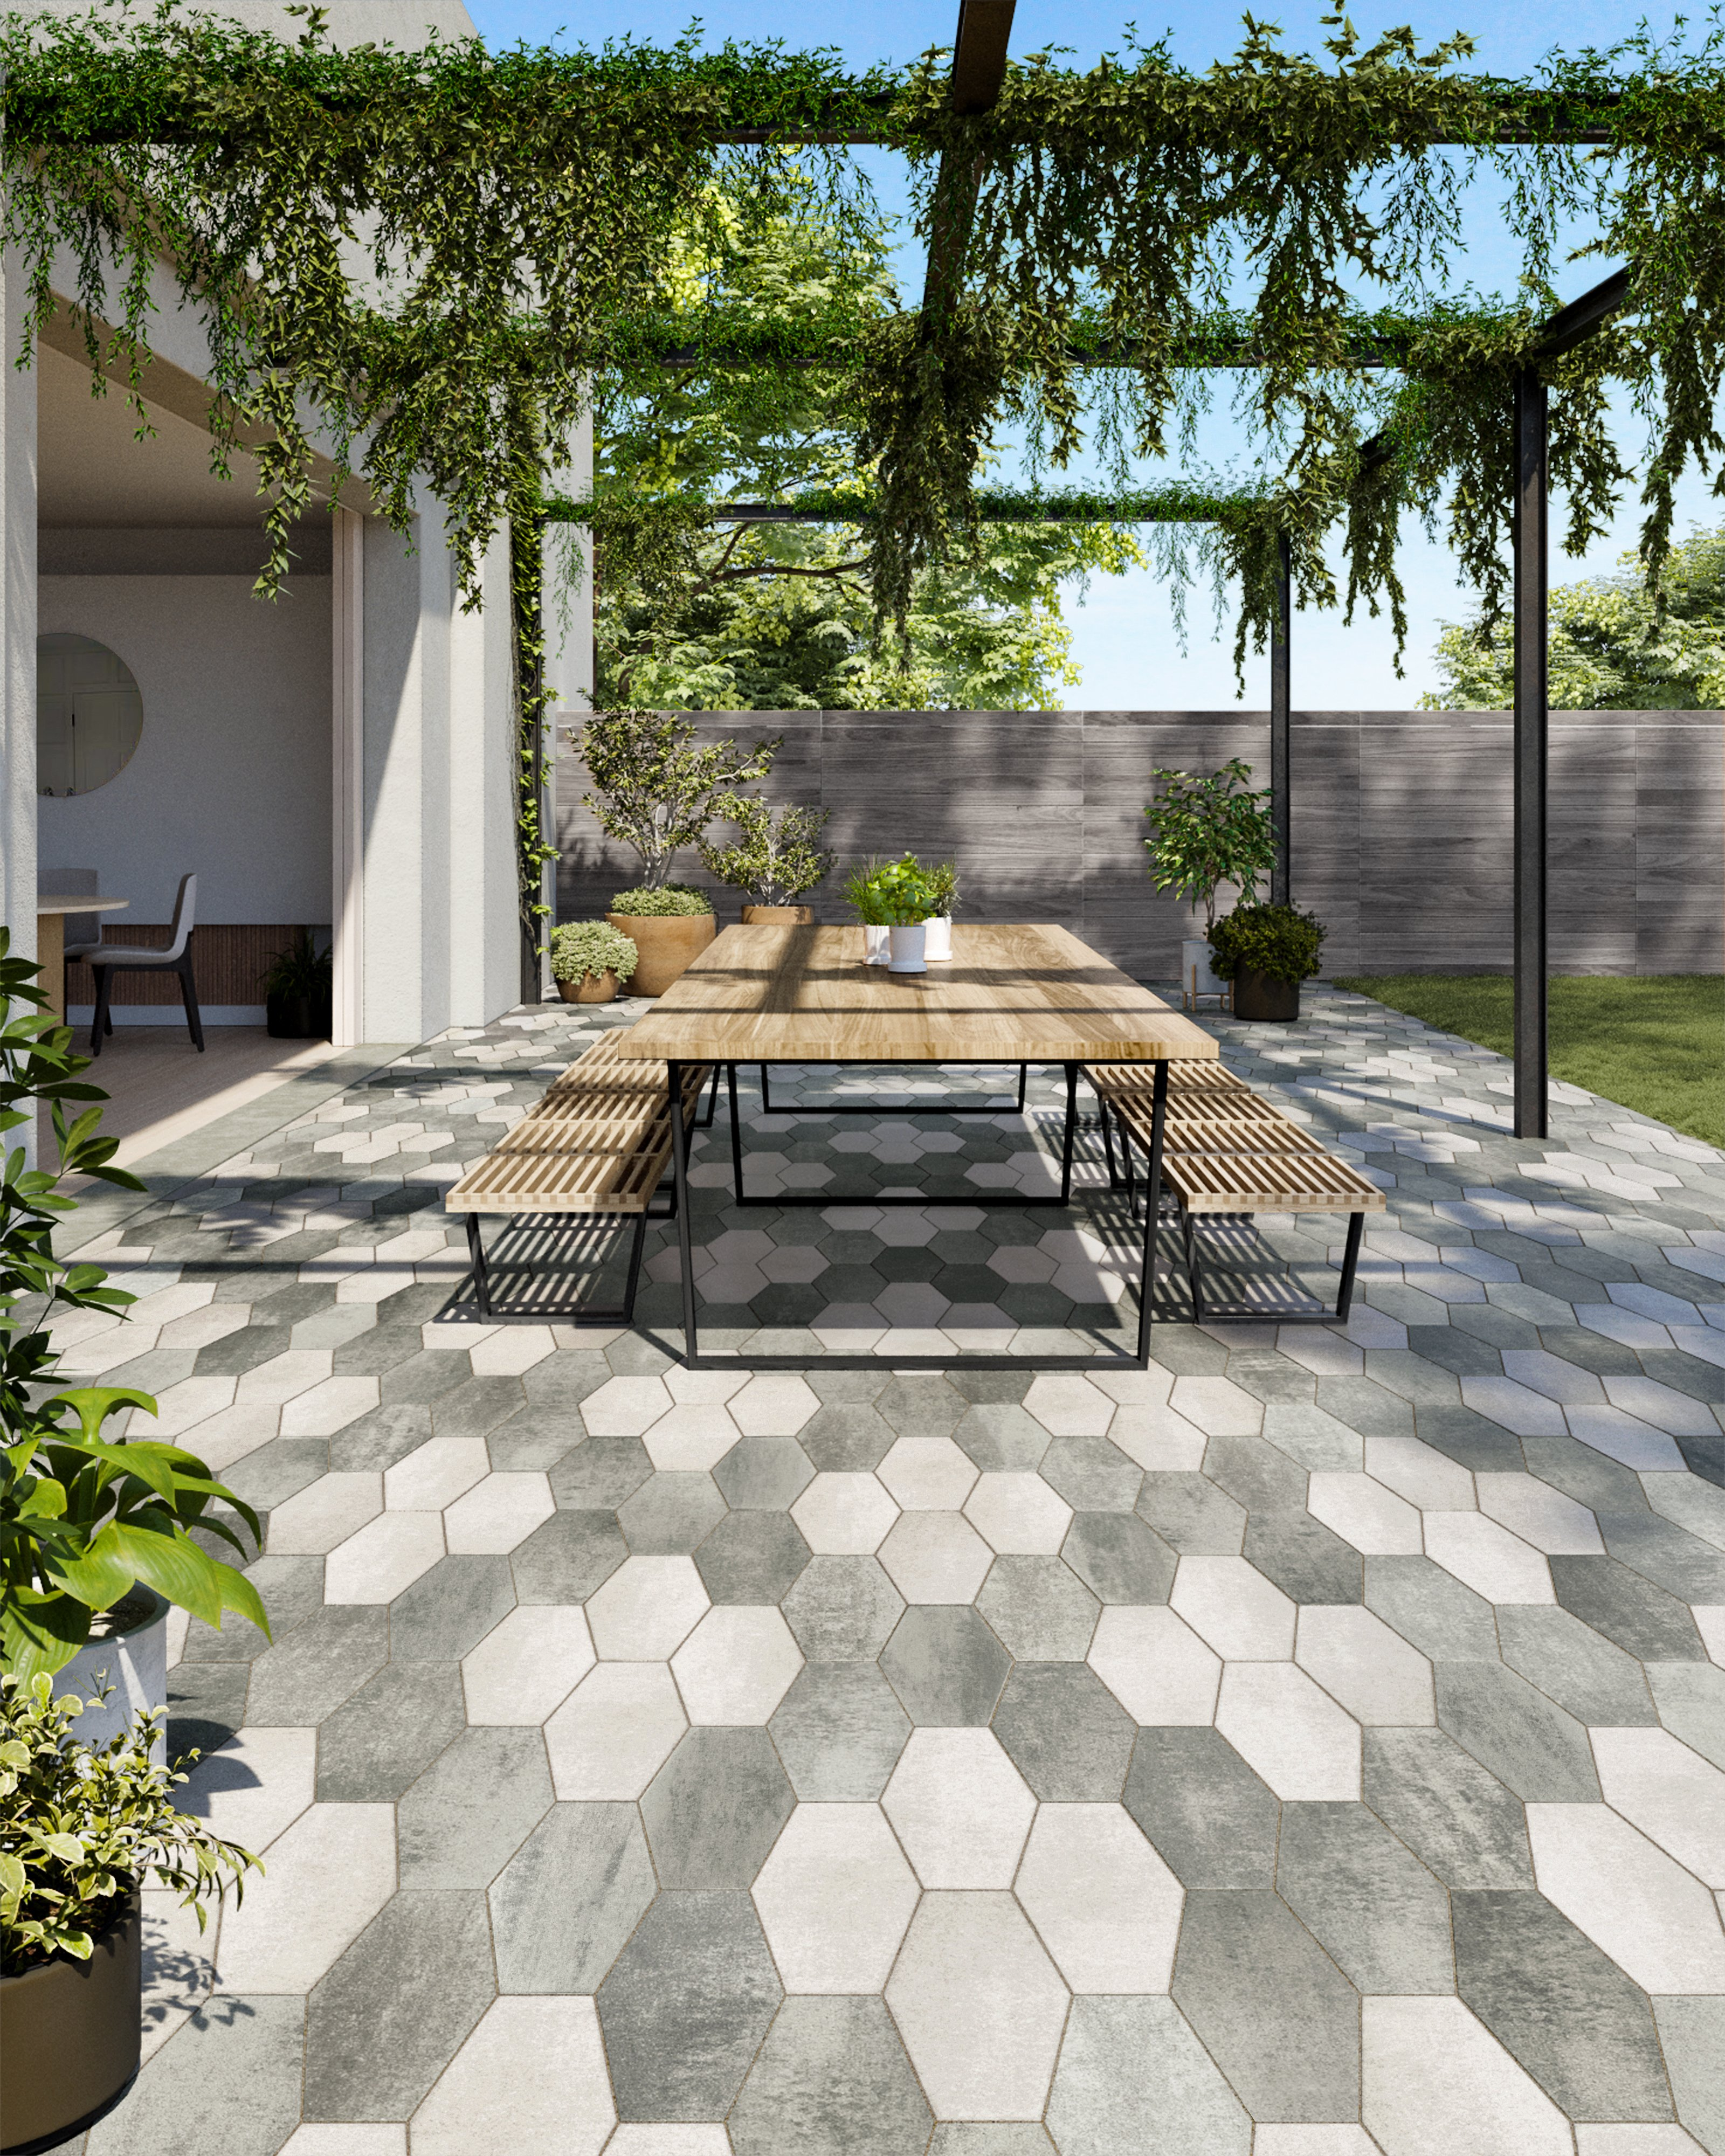 Hexa pavers in Shale Grey